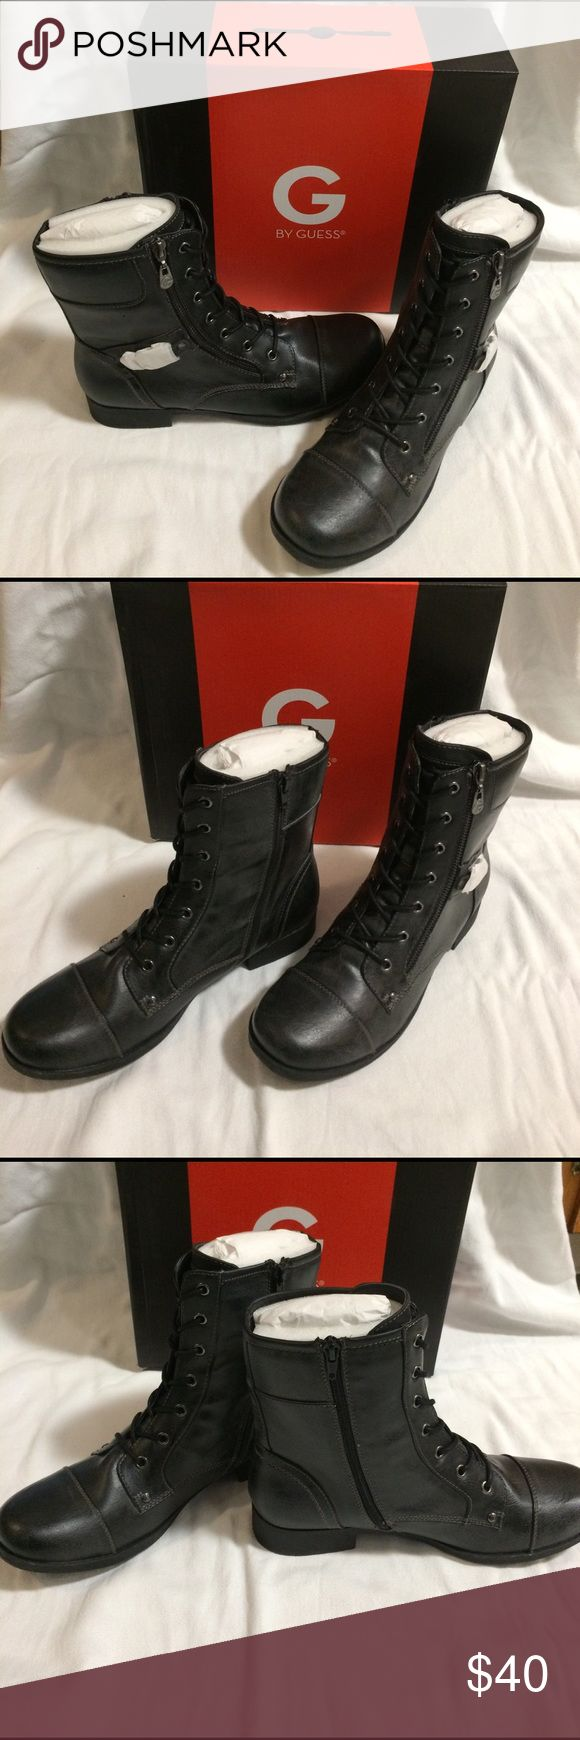 NWT Guess Bates Combat Boot Brand new in box. G by Guess black Bates Combat boots. I have a 9.5 and Size 10. Brand new with box and packaging in shoes.Faux leather upper in a lace up combat boot style with a round toe. Side zipper. Lightweight with 1 inch heel. Decorative buckle with the Guess logo on it. Very nice boots! G by Guess Shoes Ankle Boots & Booties